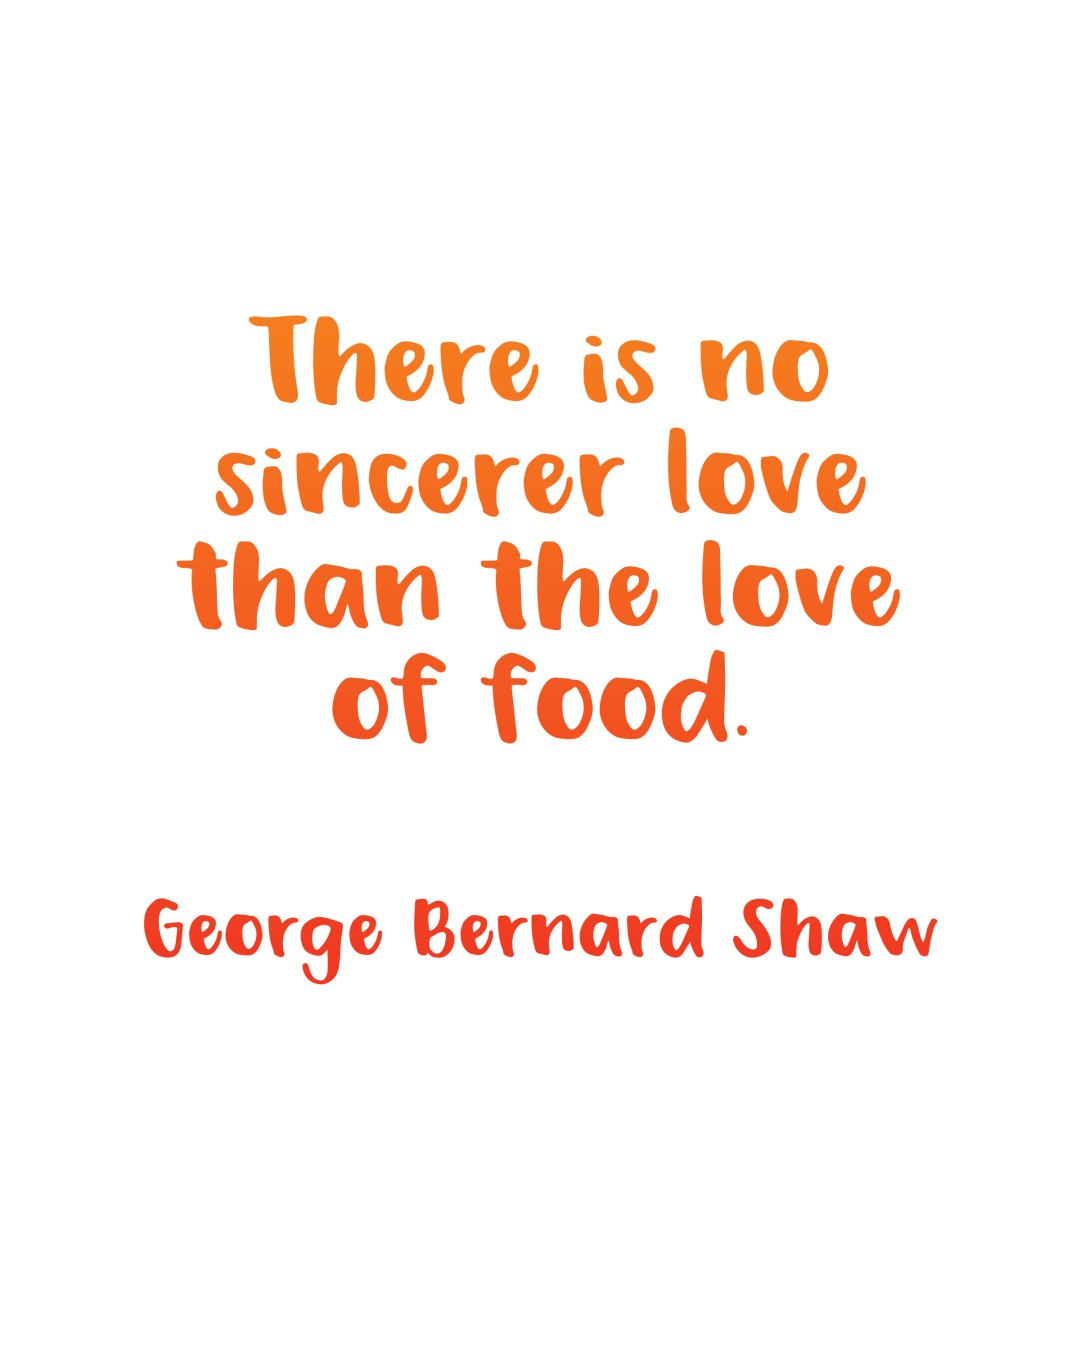 Printable Inspiration Food Quote By George Bernard Shaw Random Olive